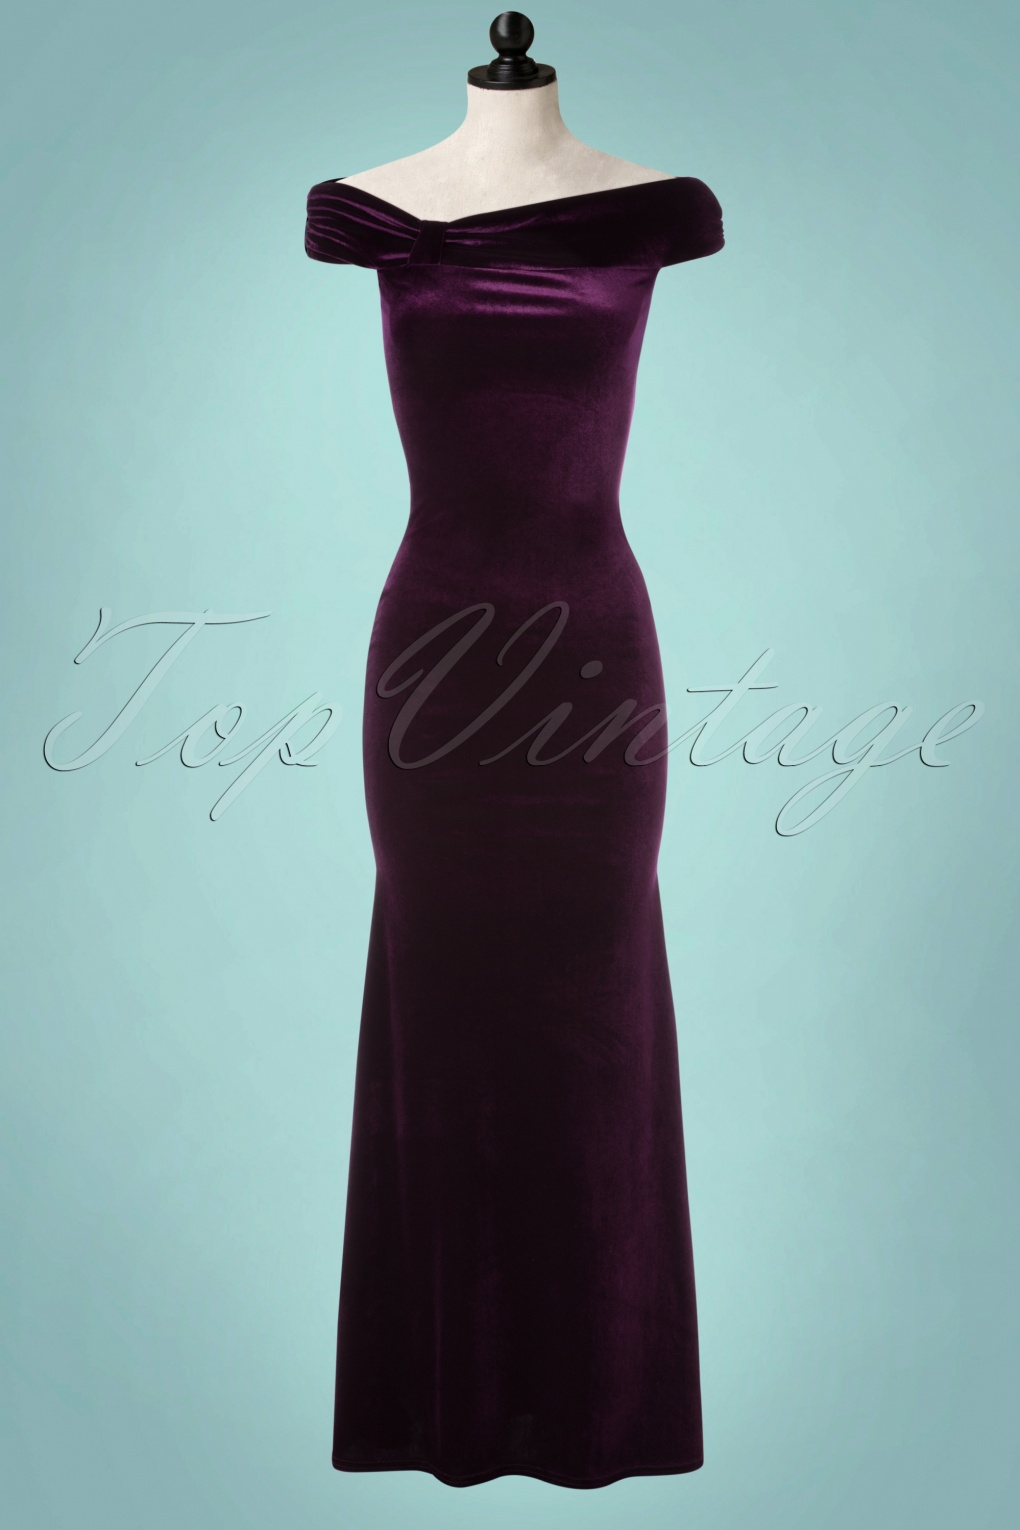 1950s Prom Dresses & Party Dresses 50s Pamela Velvet Maxi Dress in Purple £66.62 AT vintagedancer.com